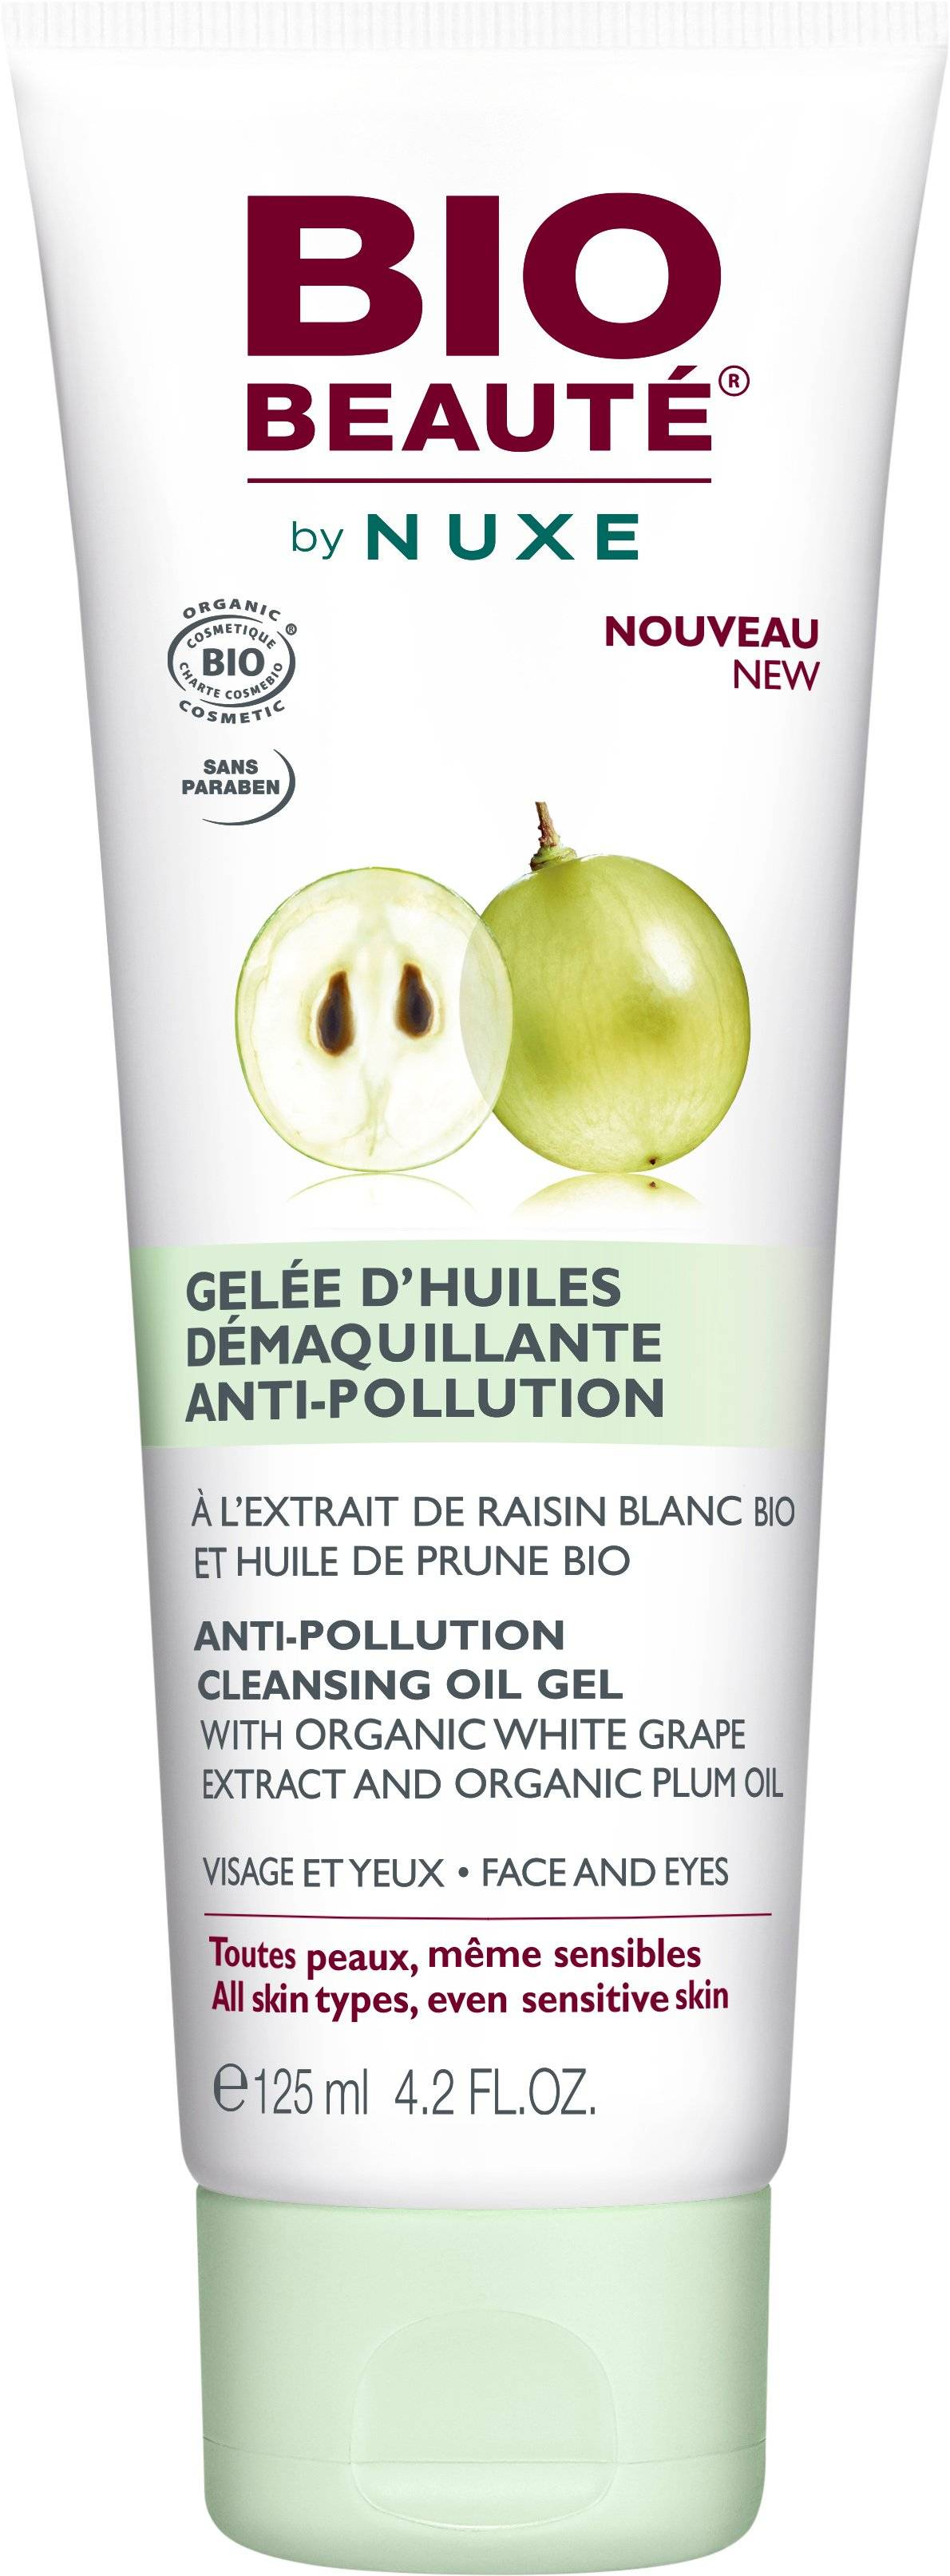 Bio Beauté by Nuxe Anti-Pollution Cleansing Oil Gel 125 ml